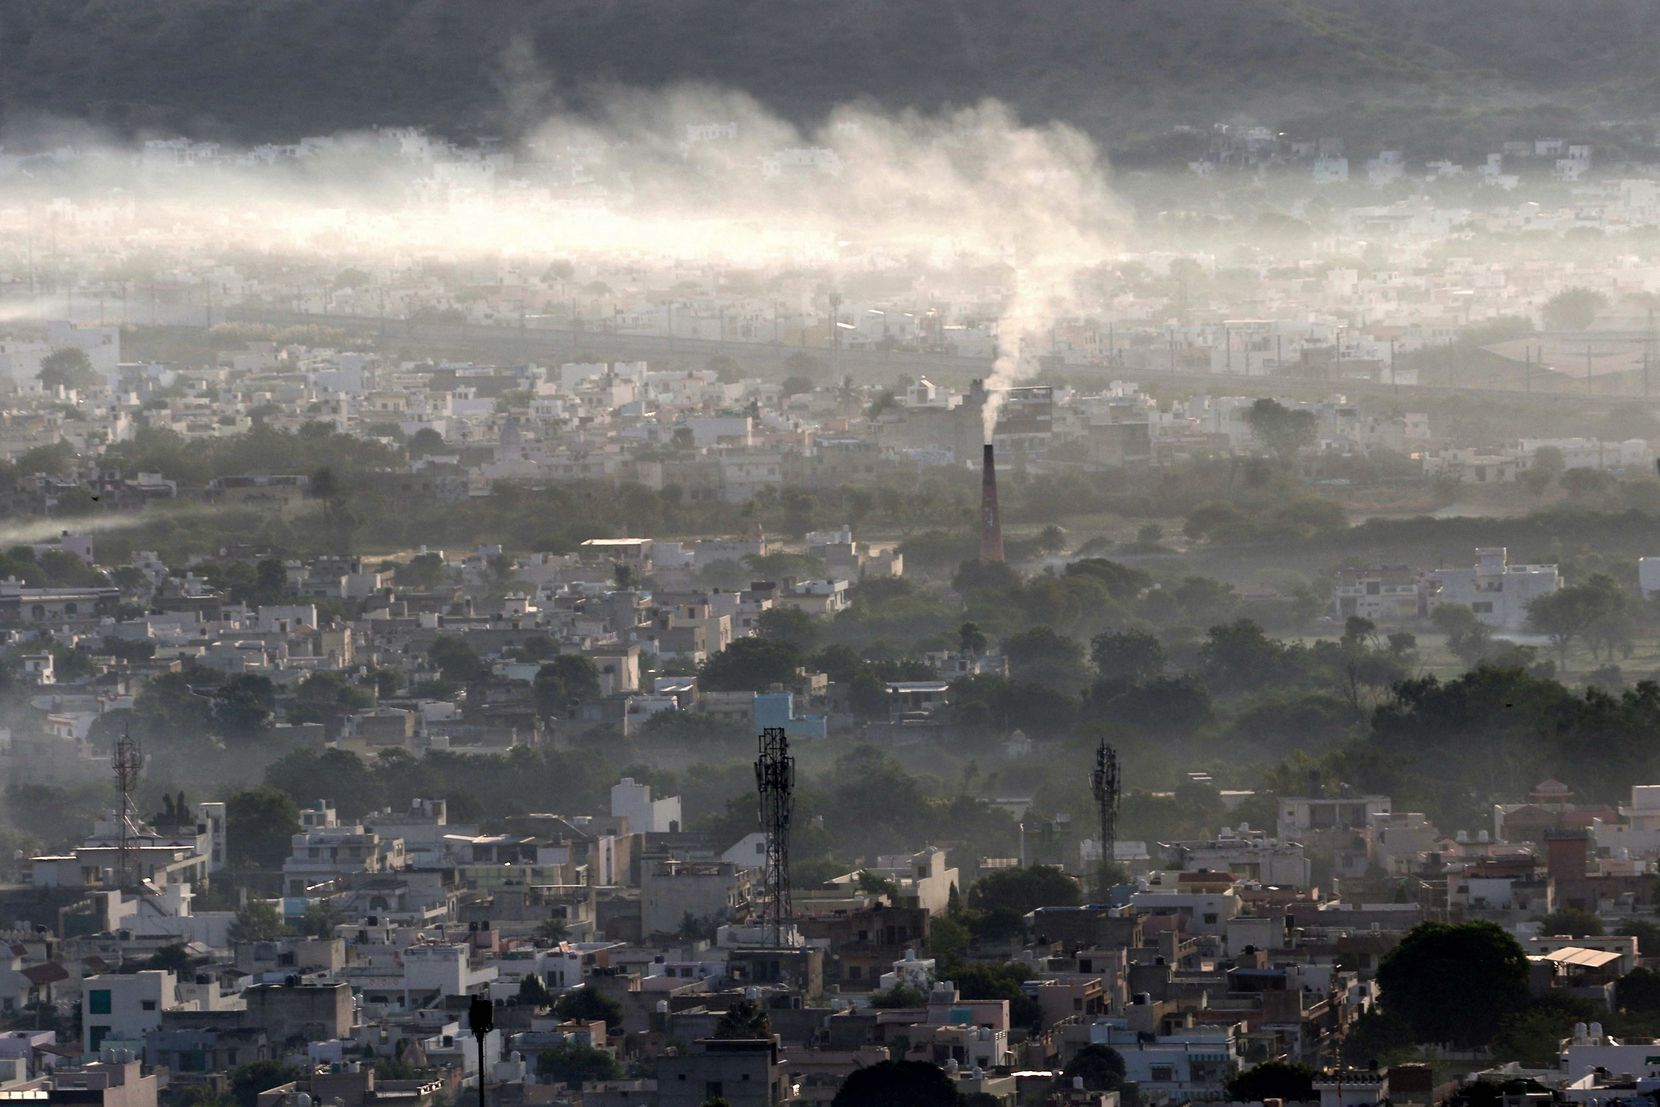 CO2 emissions began to increase late last year and into 2021 as vaccines began to foll out and coronavirus restrictions were lifted. Above, a factory in Ajmer, in northern India, belches smoke from its chimney.